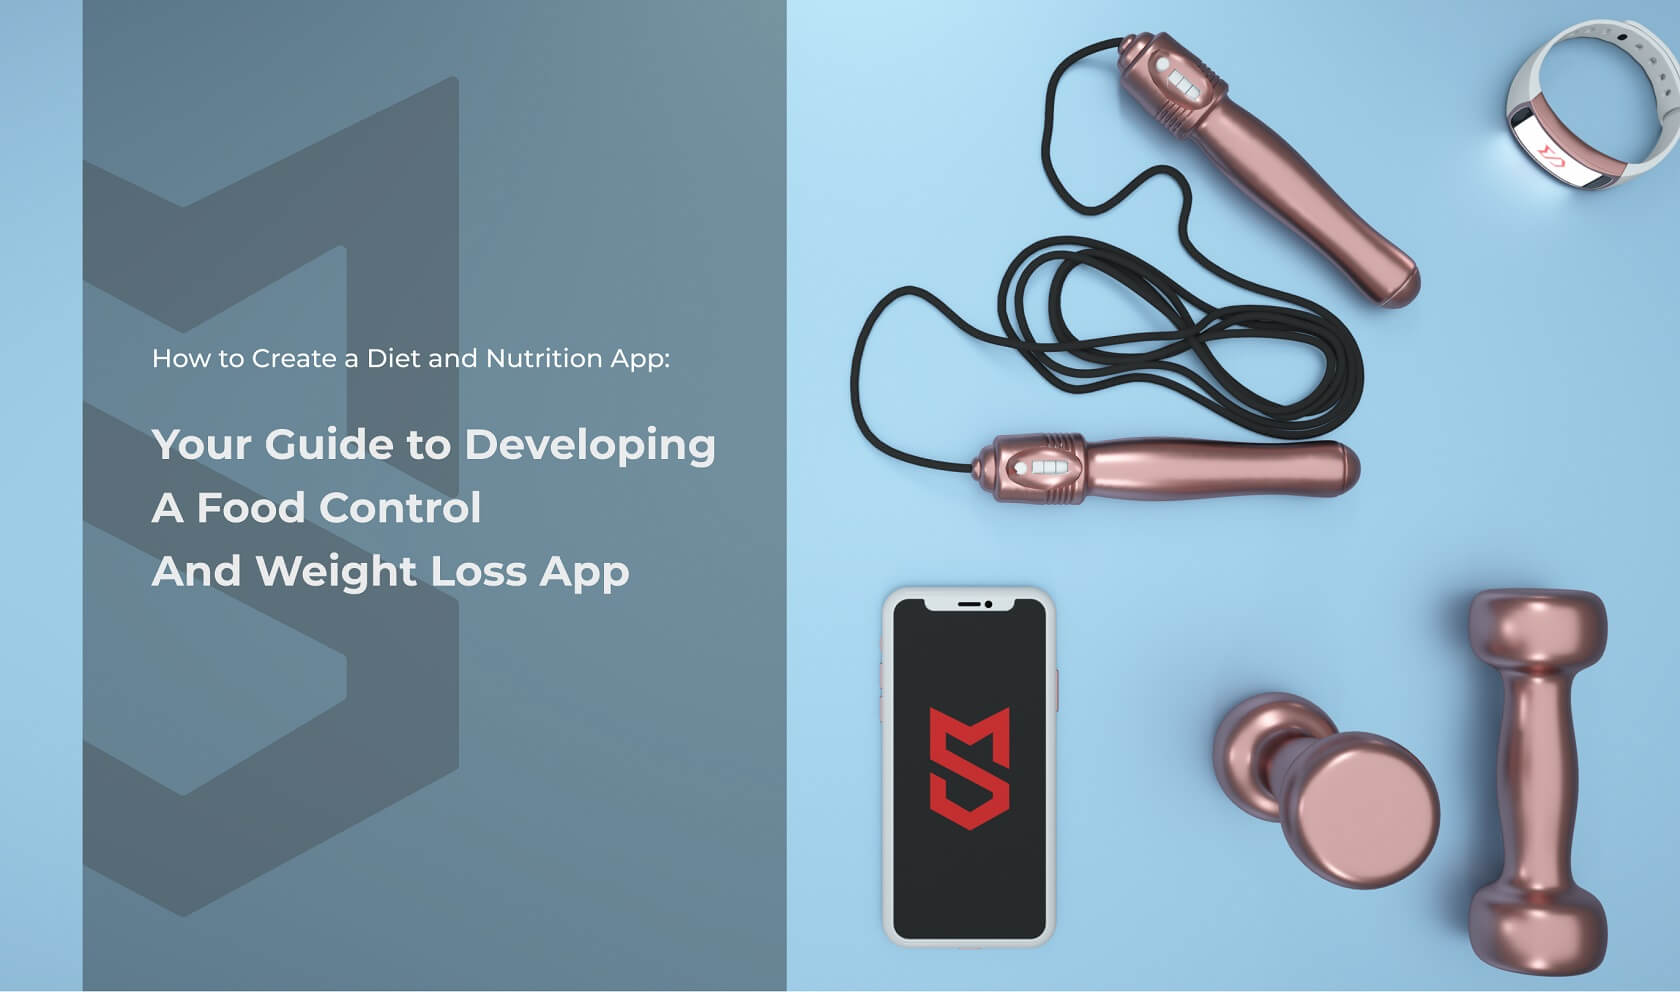 How to Create a Diet and Nutrition App: Your Guide to Developing a Food Control and Weight Loss App